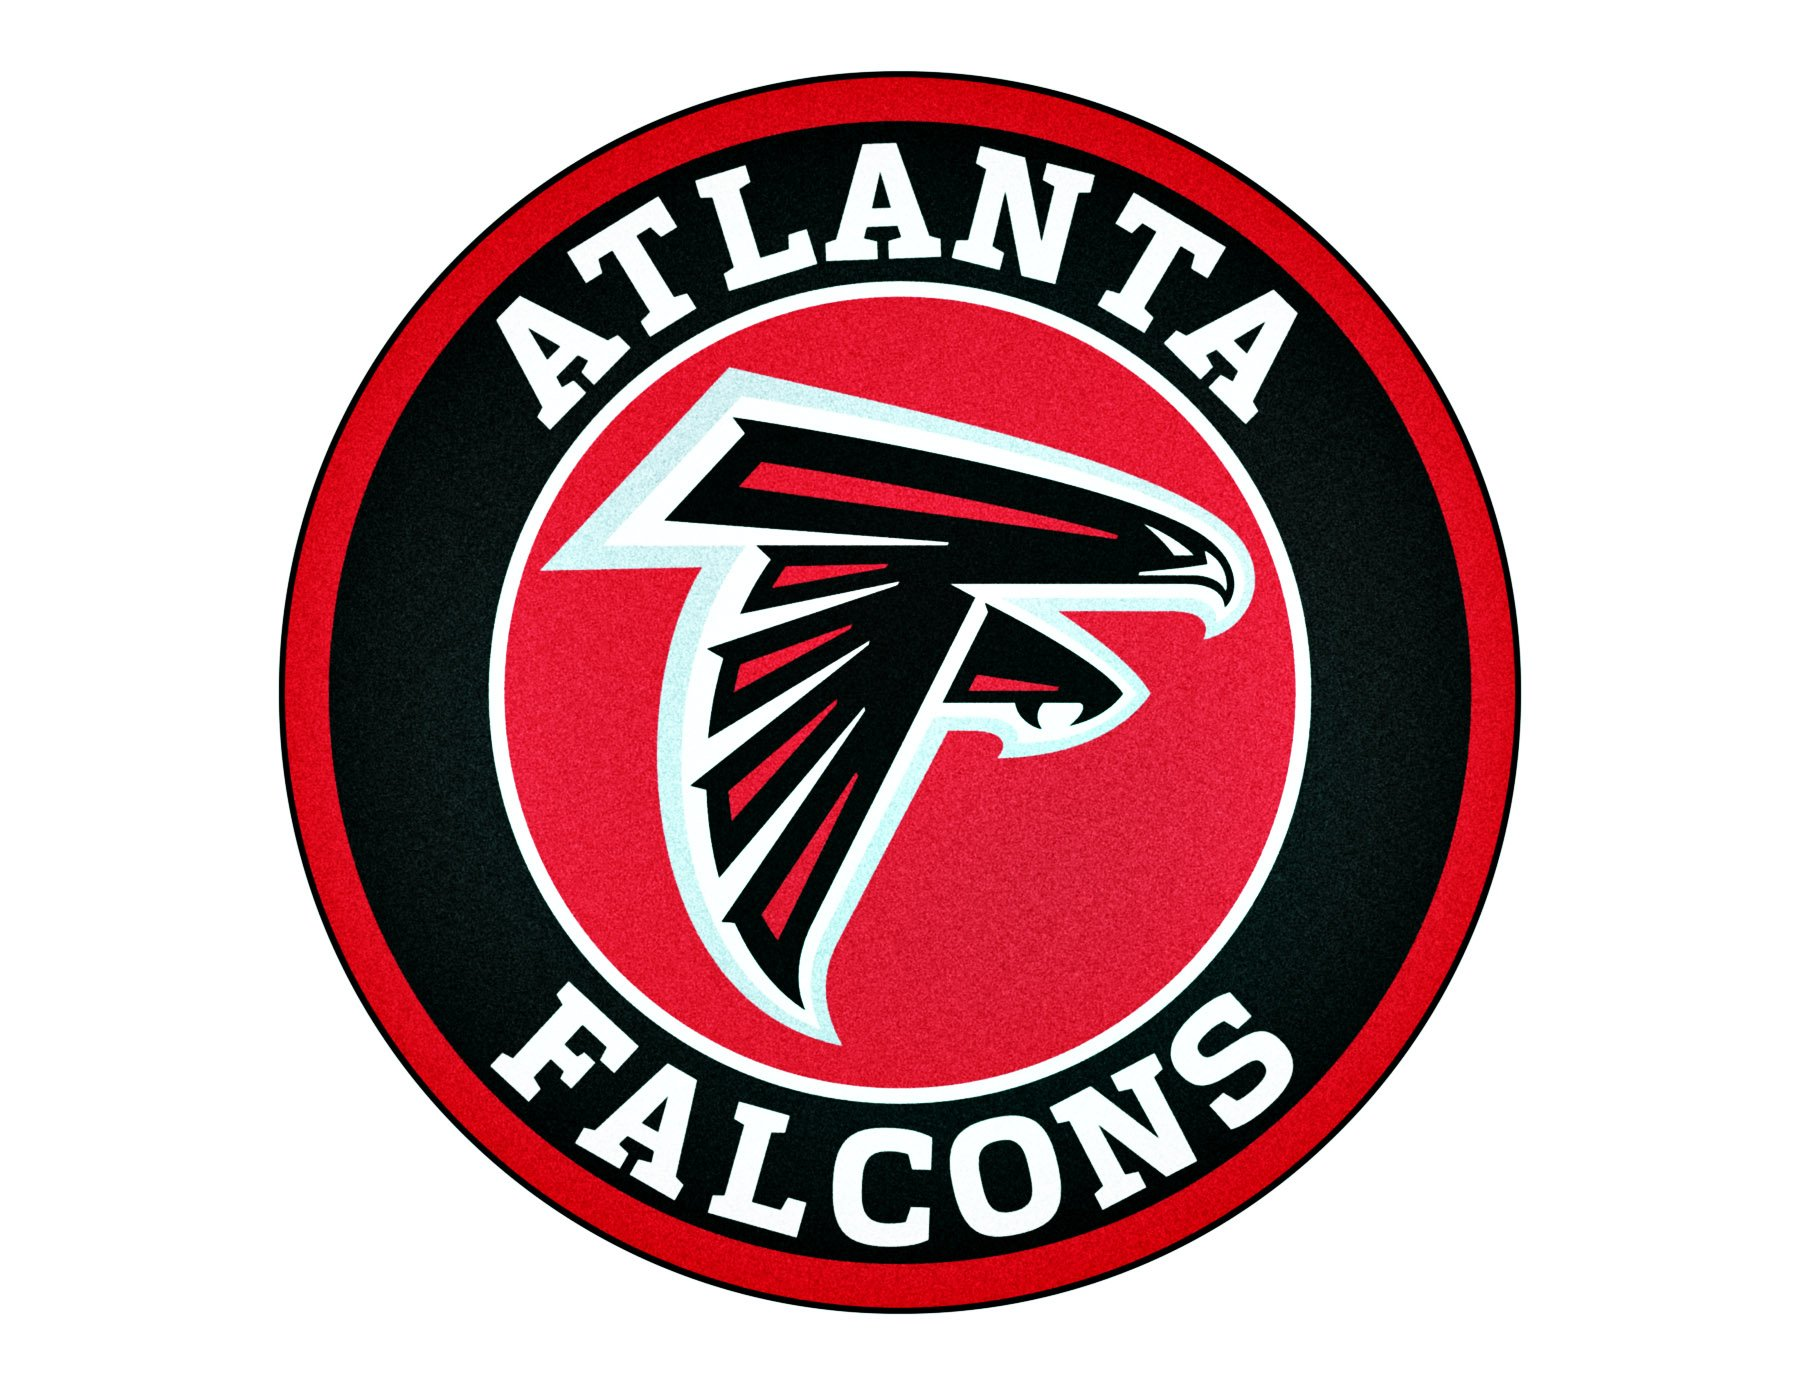 Atlanta Falcons Images: Atlanta Falcons Logo, Atlanta Falcons Symbol, Meaning